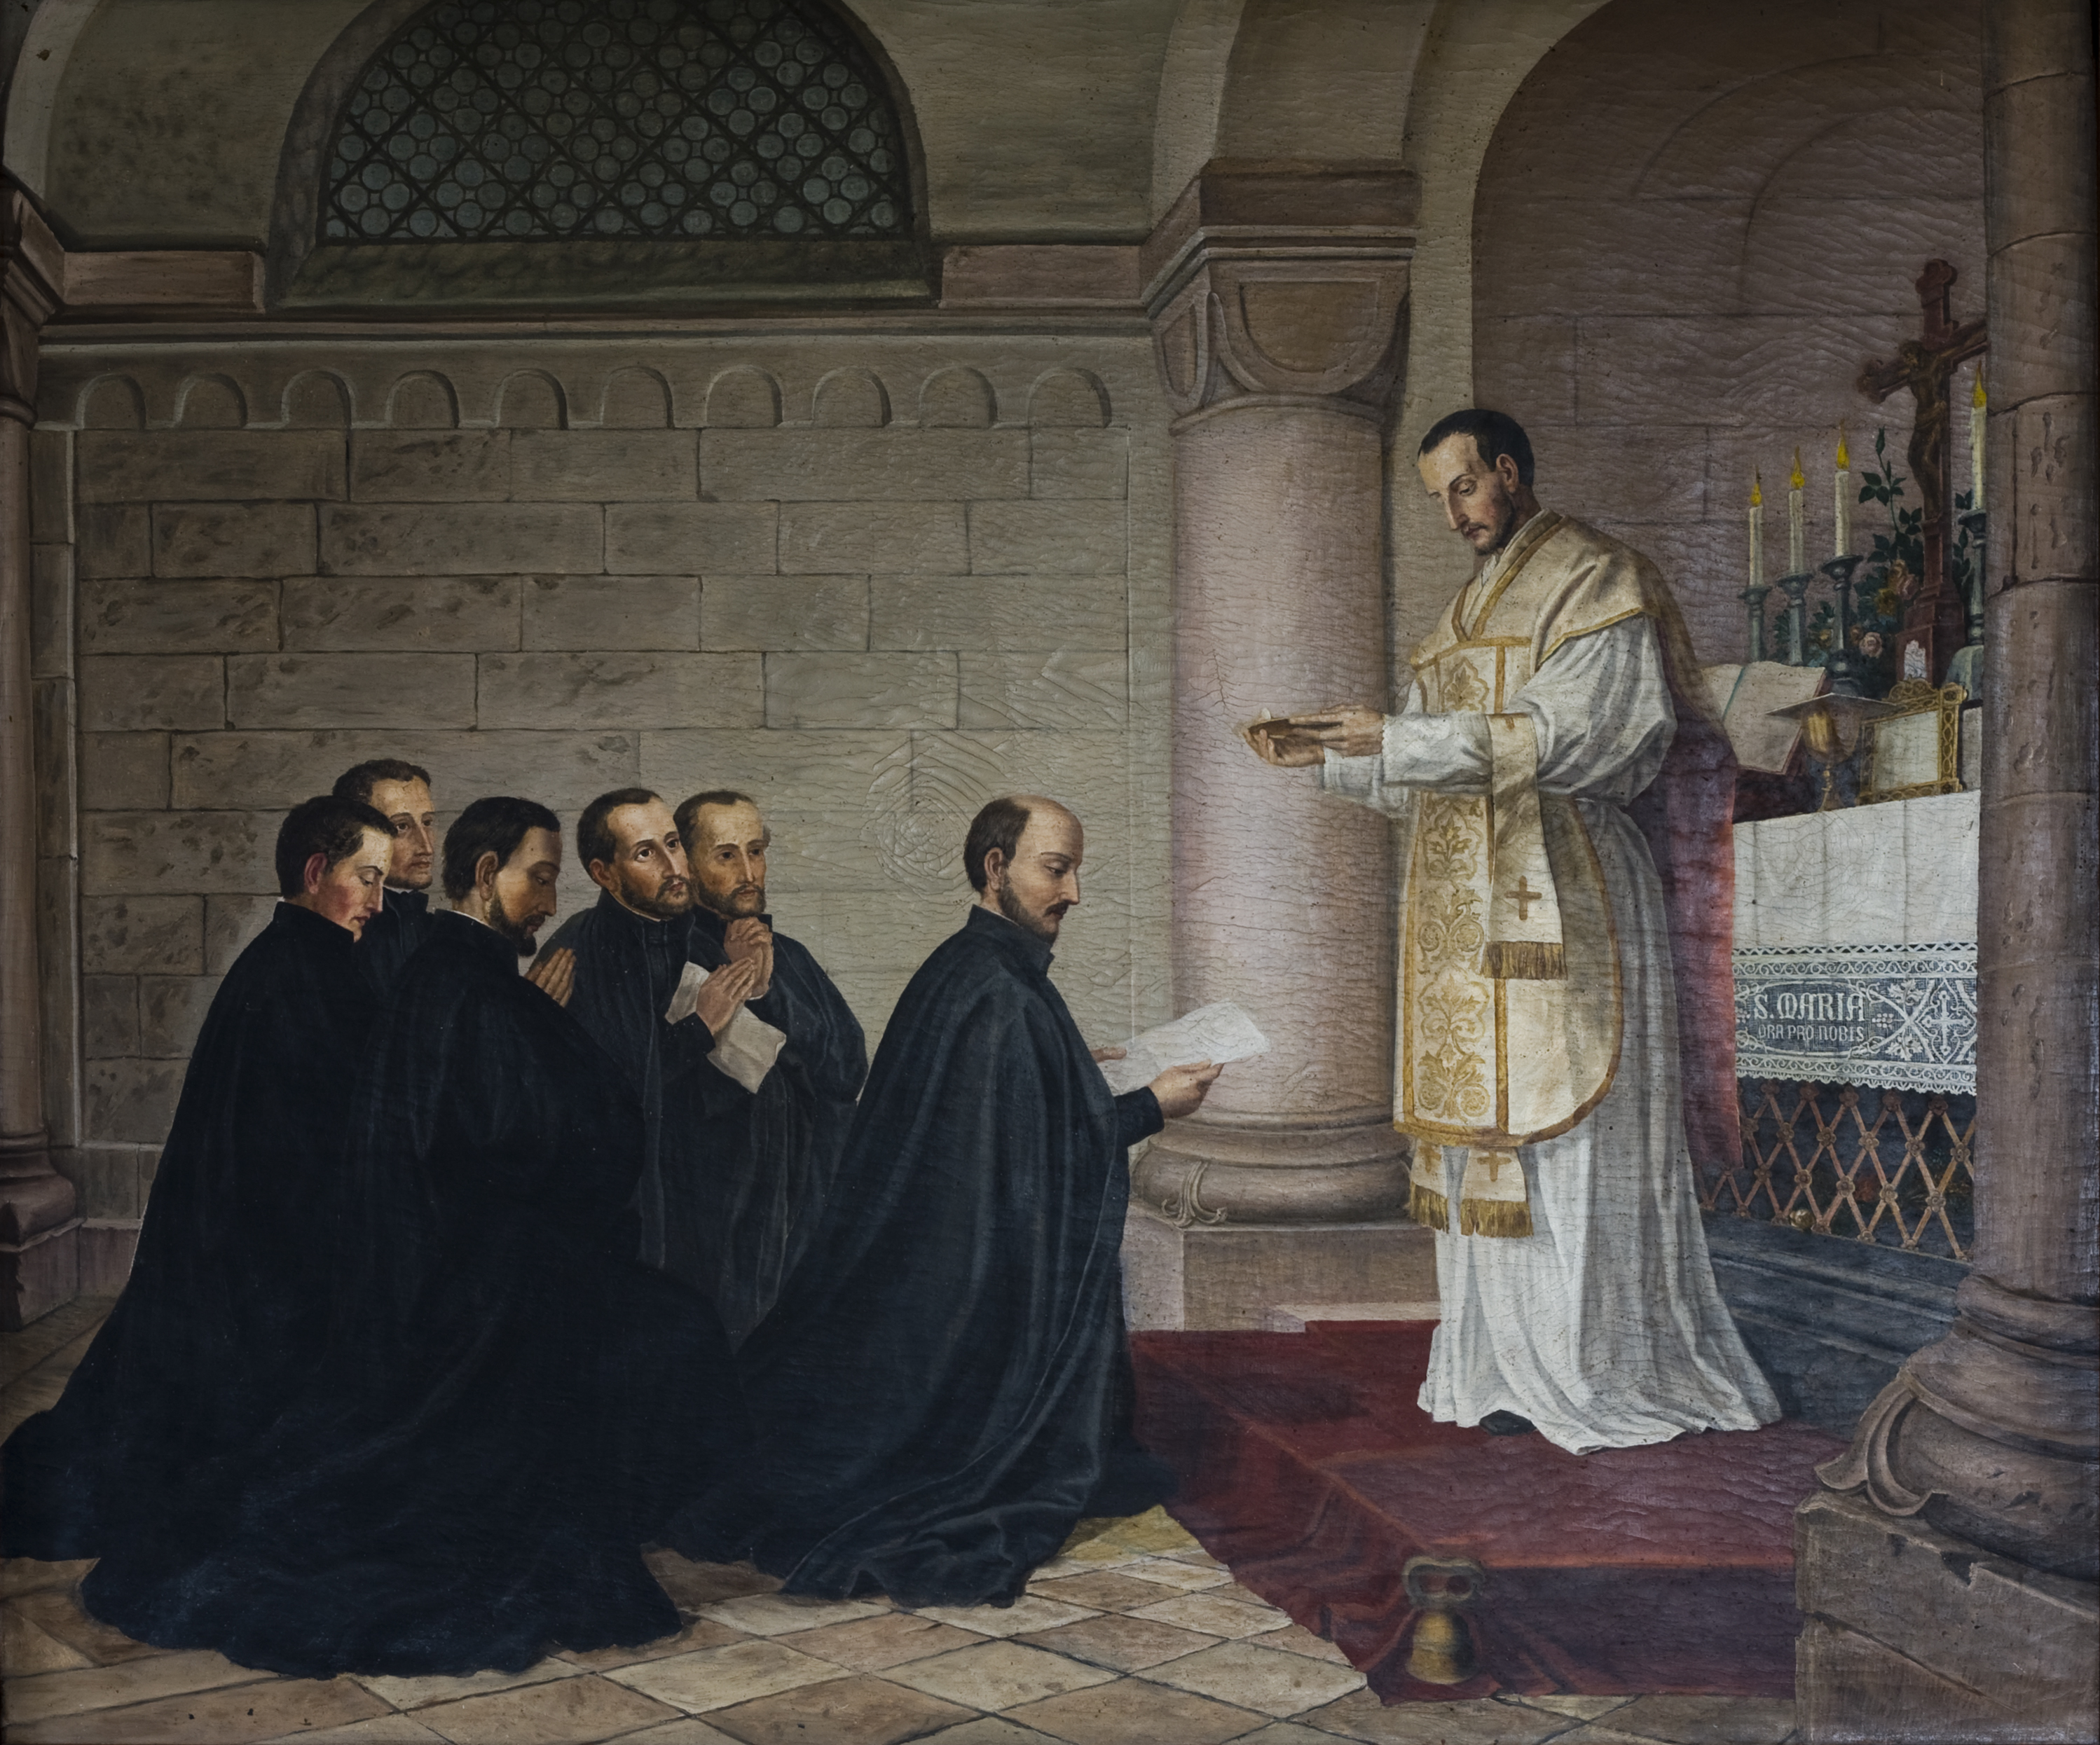 the society of jesus the jesuits religion essay Cluded the imposition of the roman catholic religion by force of arms this forced   tions for the jesuit policy of adapting their missionary methods and their.